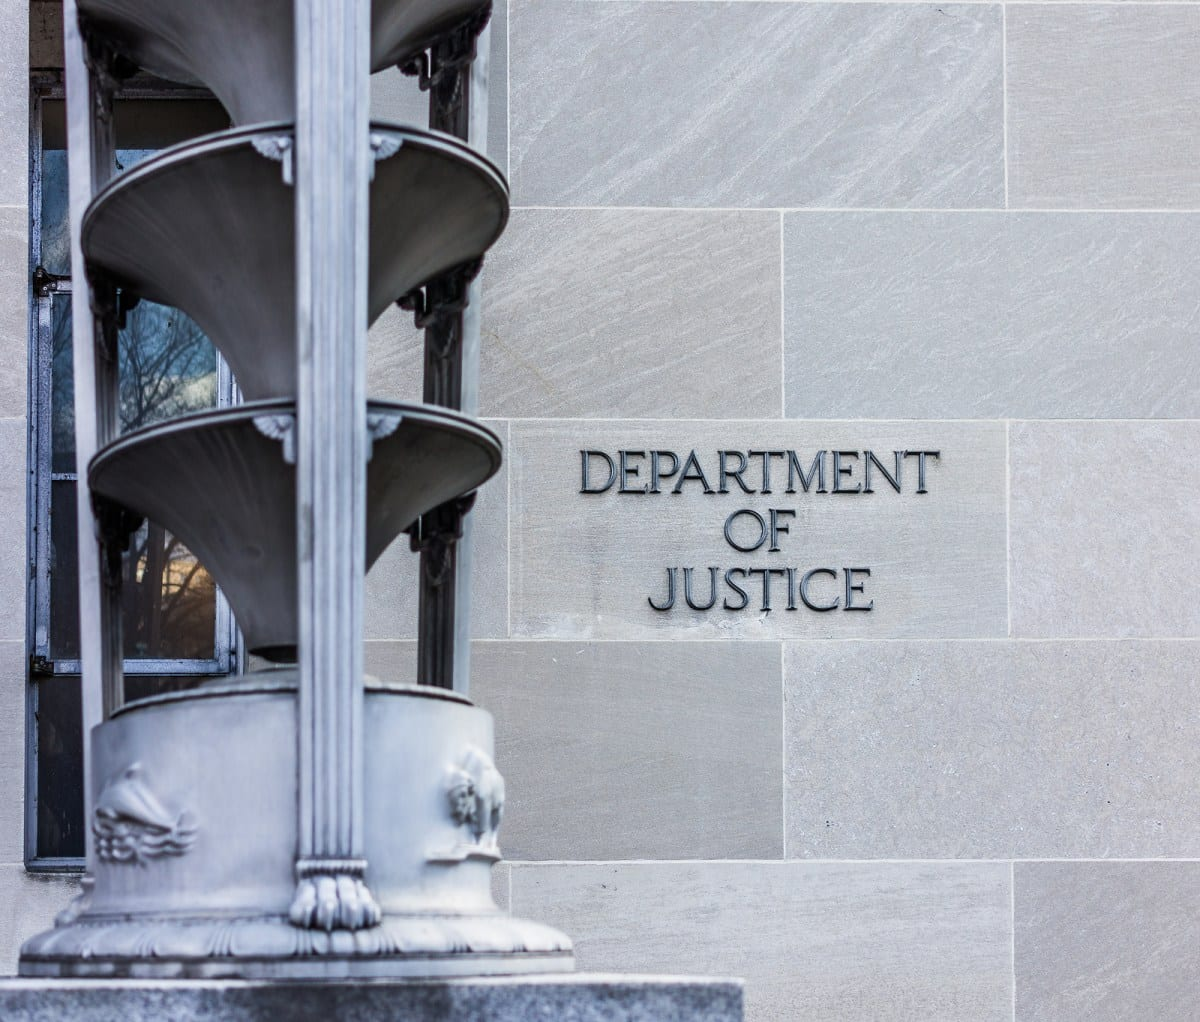 Illinois News: West Suburban Sex Trafficker, ALLEN YOUNG Sentenced to 21 Years in Federal Prison